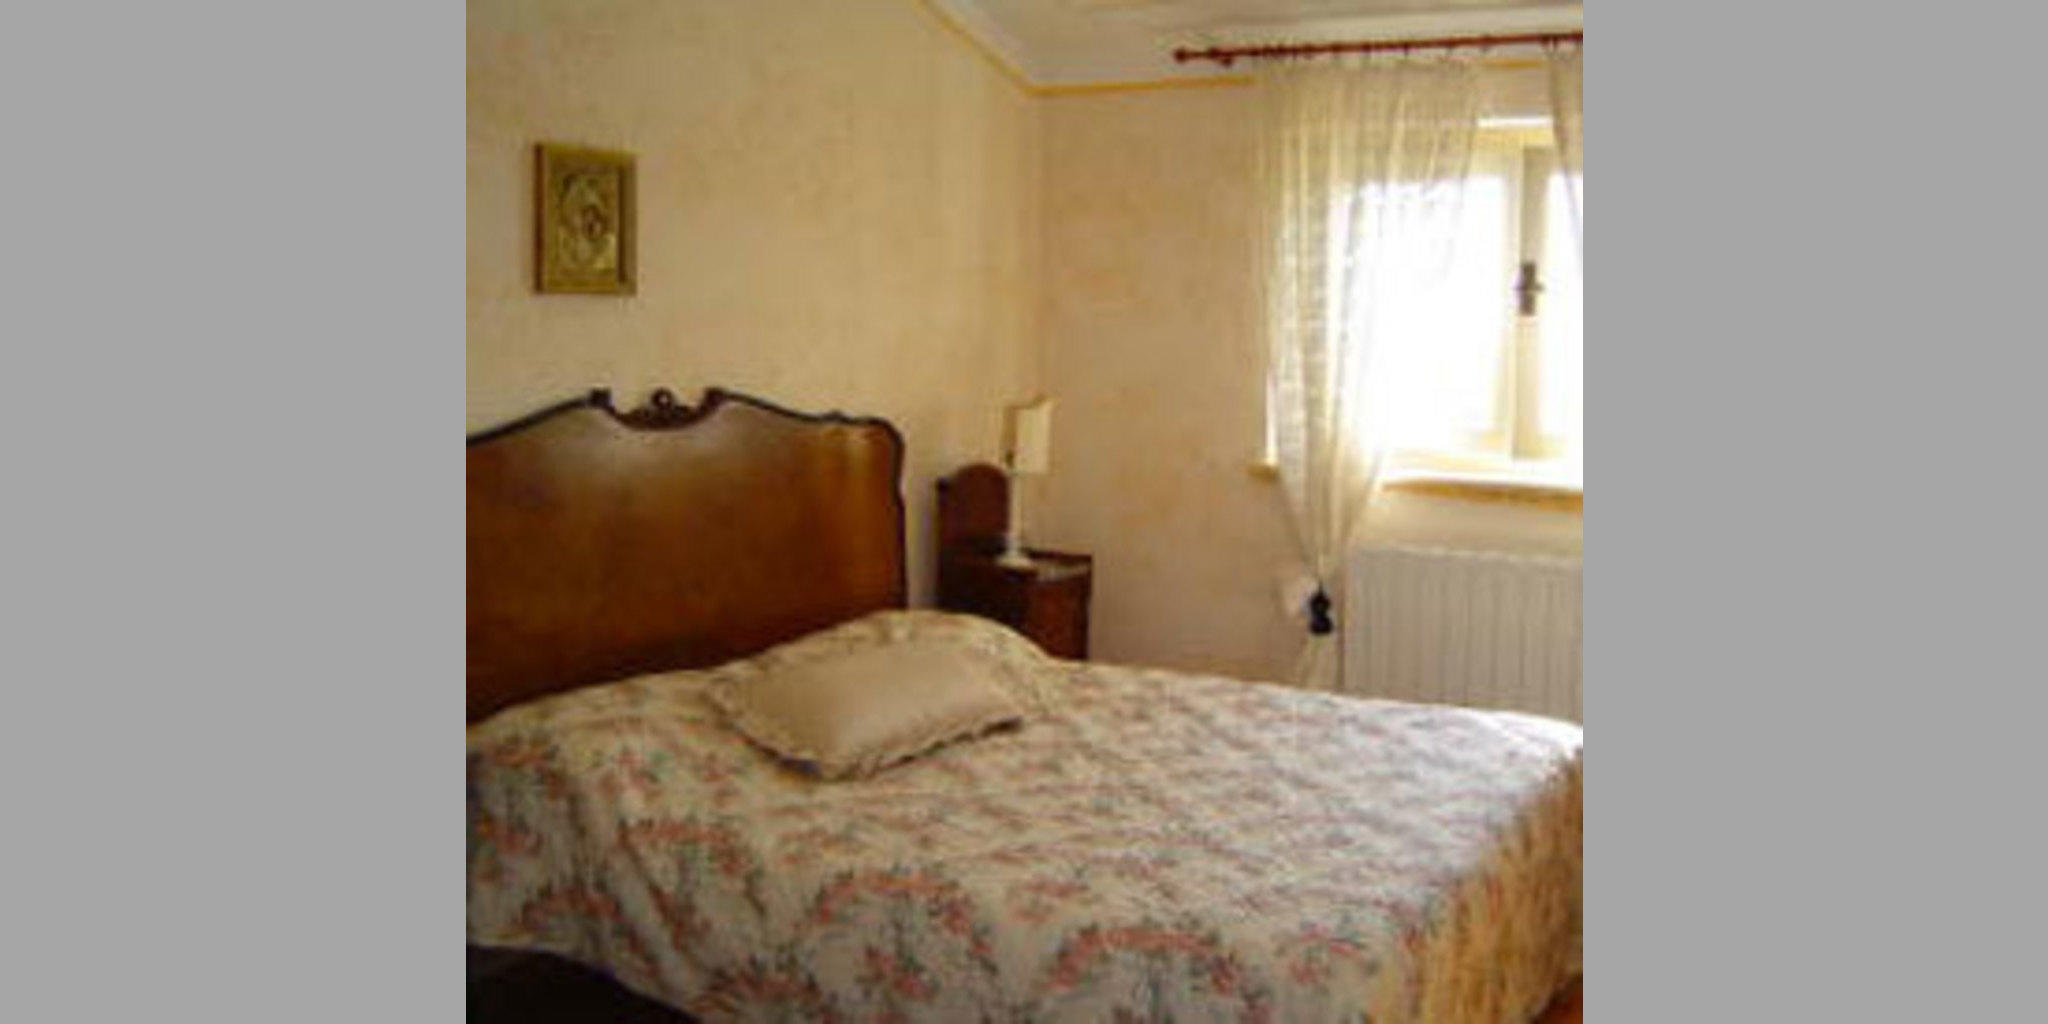 Bed & Breakfast Magliano Sabina - Vocabolo Mazzamora2